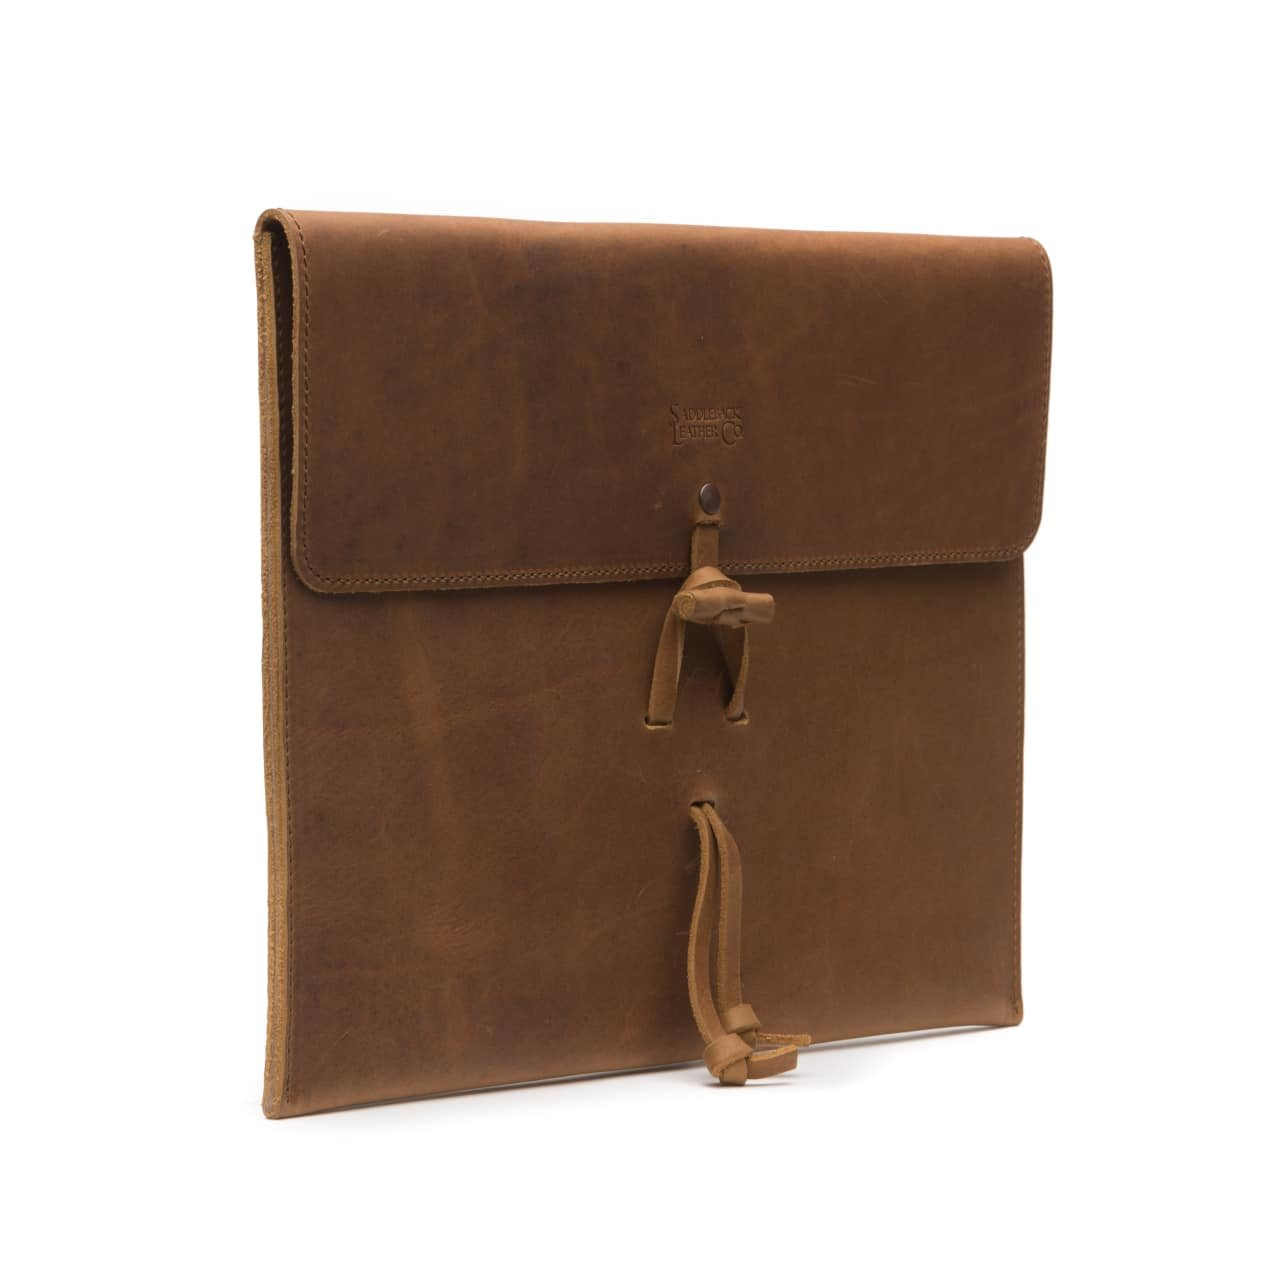 Saddleback Leather Co. Element Resistant Leather Document Protector Organizing Case Includes 100 Year Warranty